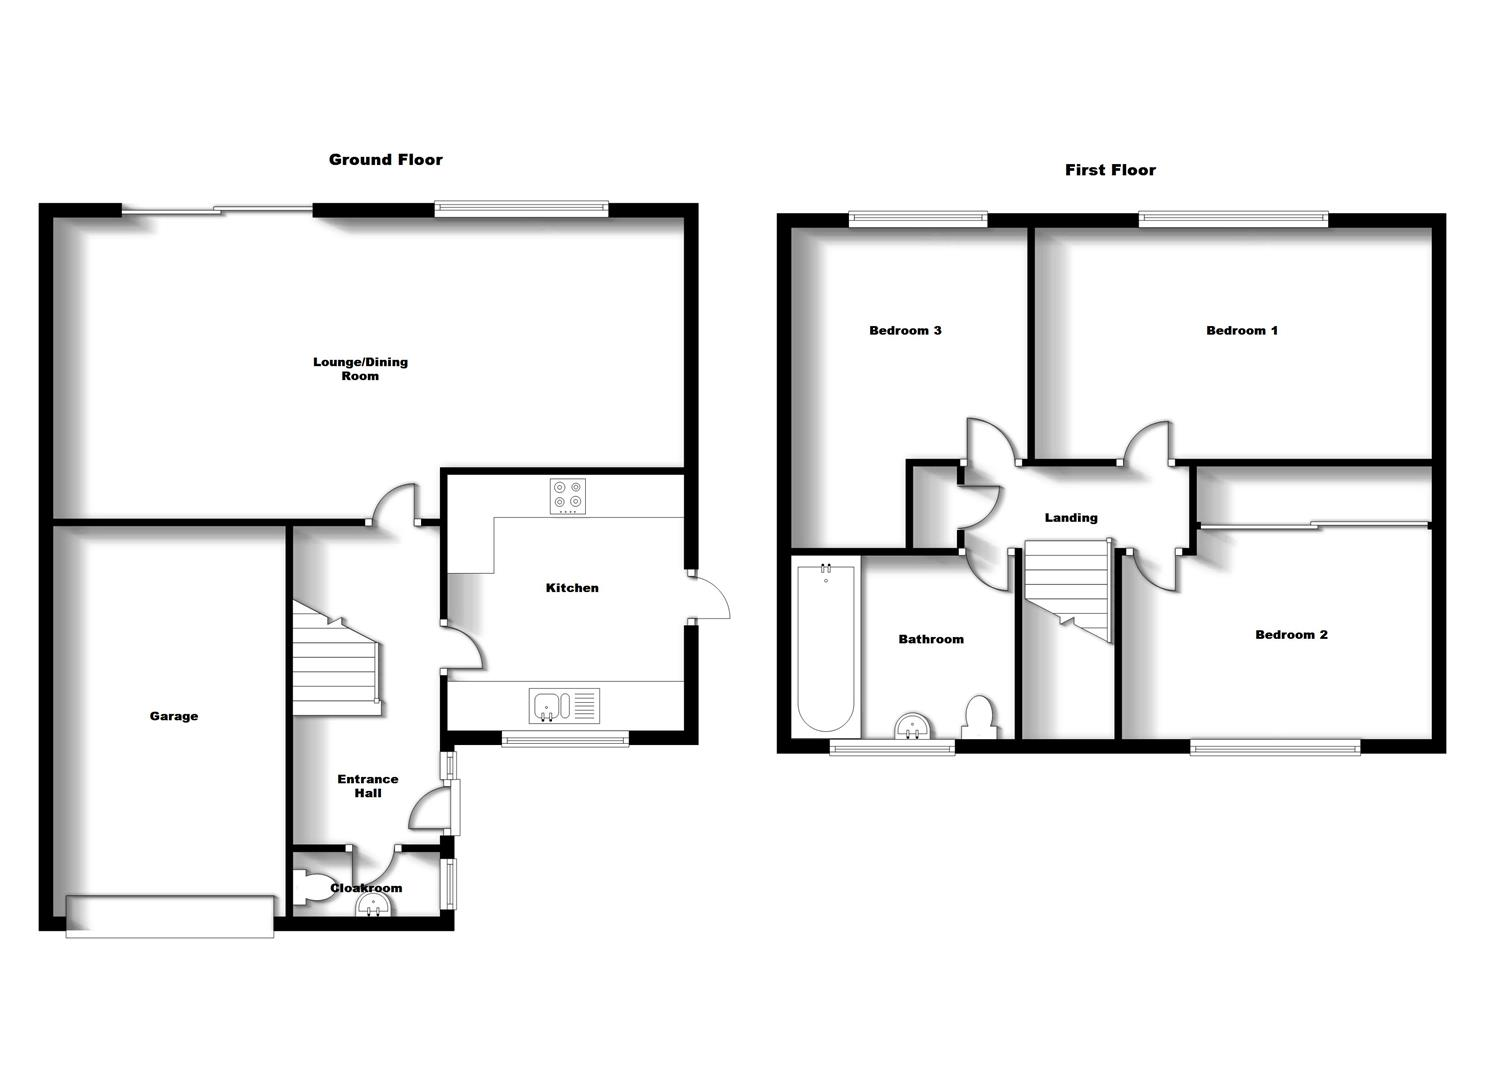 Floorplans For May Lane, Bilton, Rugby